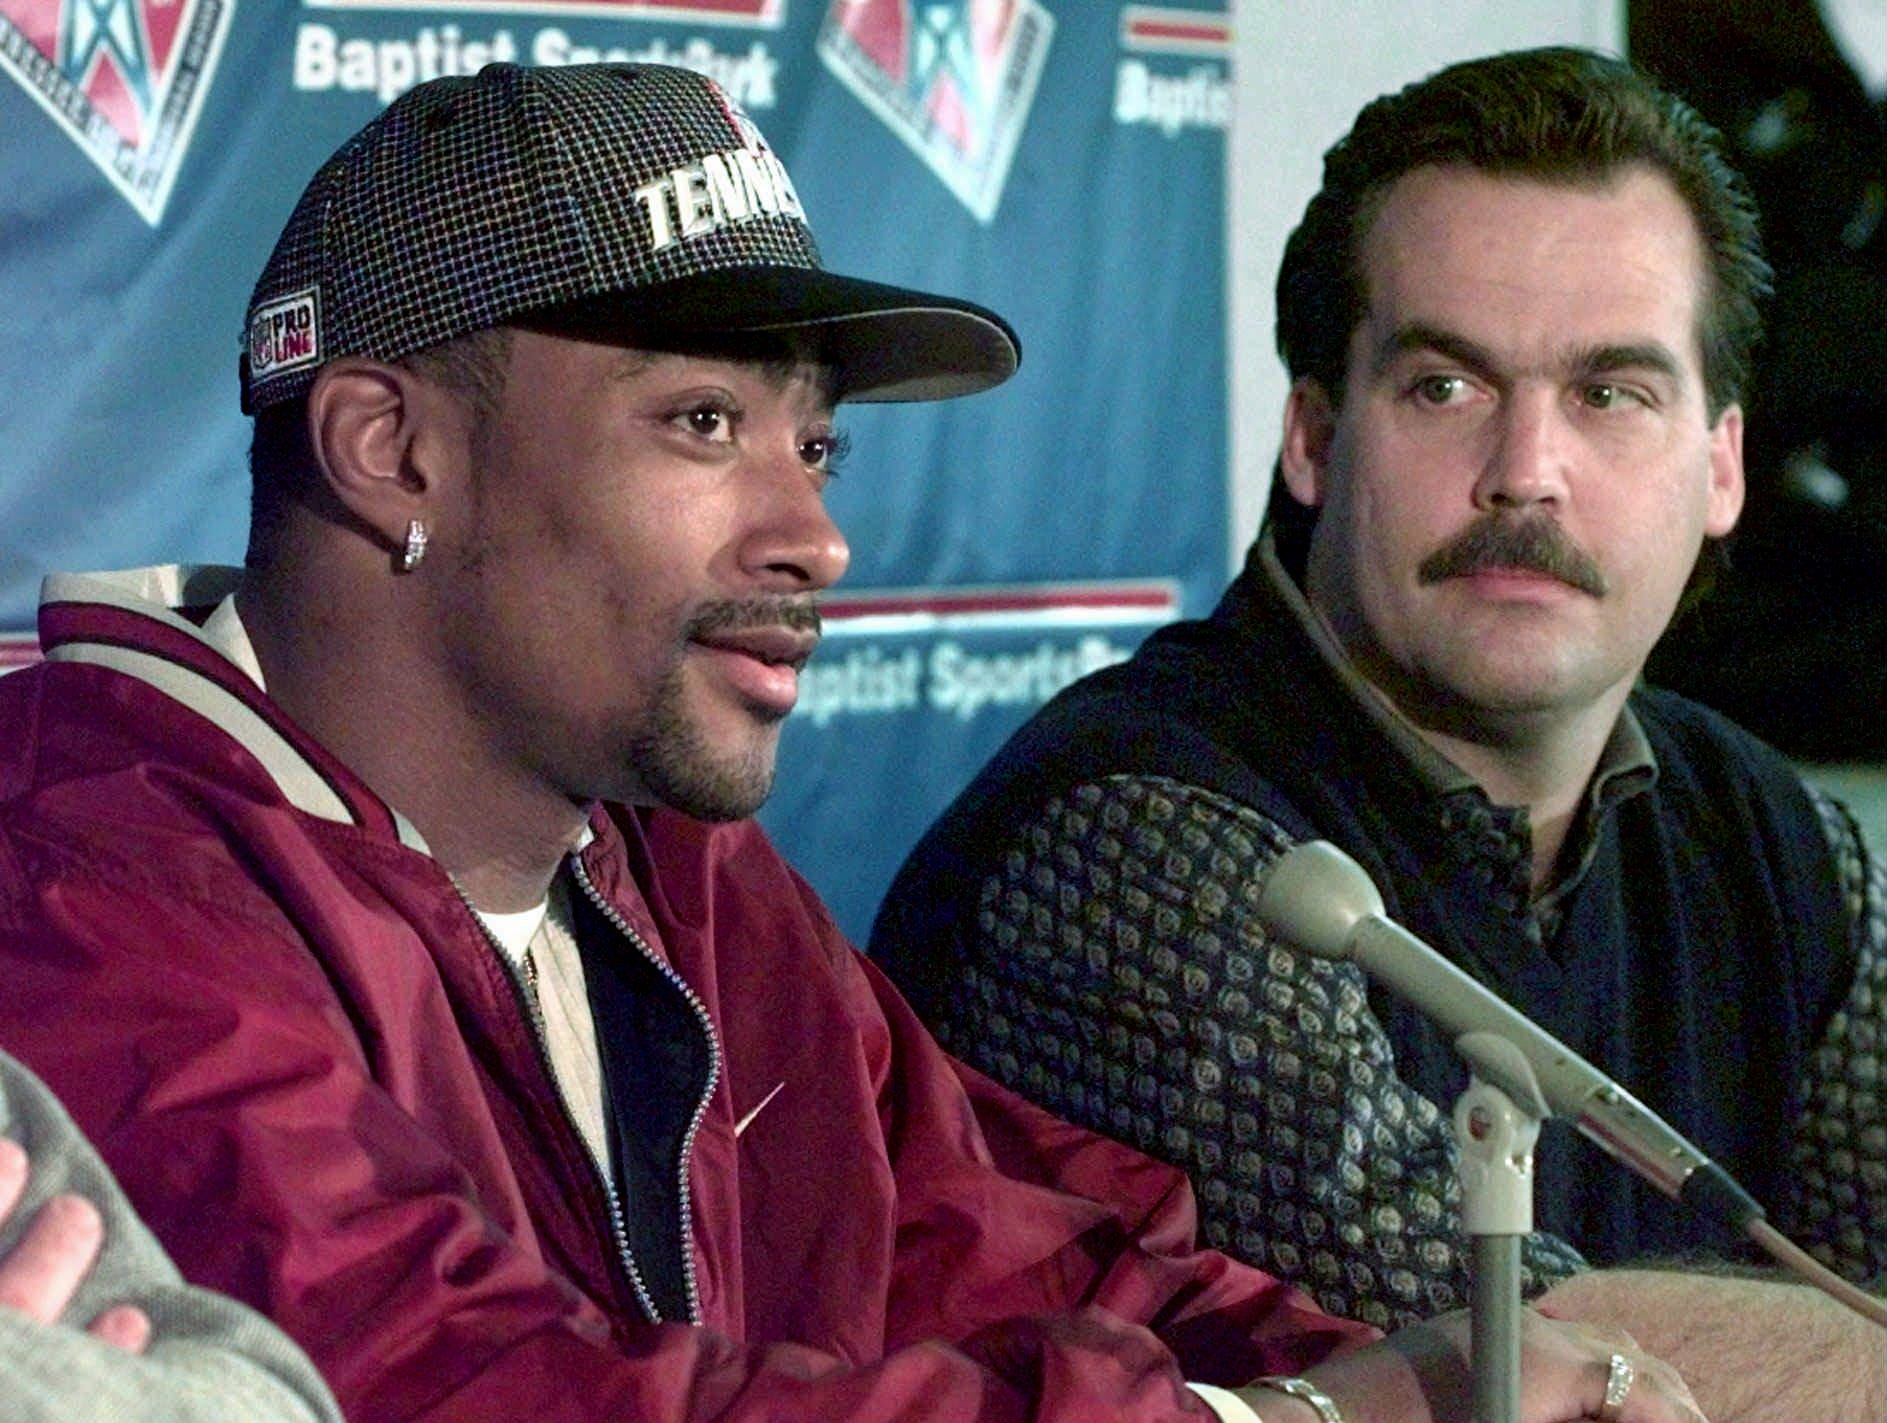 Wide receiver Yancy Thigpen, left, answers questions Feb. 14, 1998 as Tennessee Oilers coach Jeff Fisher looks on during the announcement in Nashville that Thigpen had signed a five-year contract with the Oilers after being formerly with the Pittsburgh Steelers.